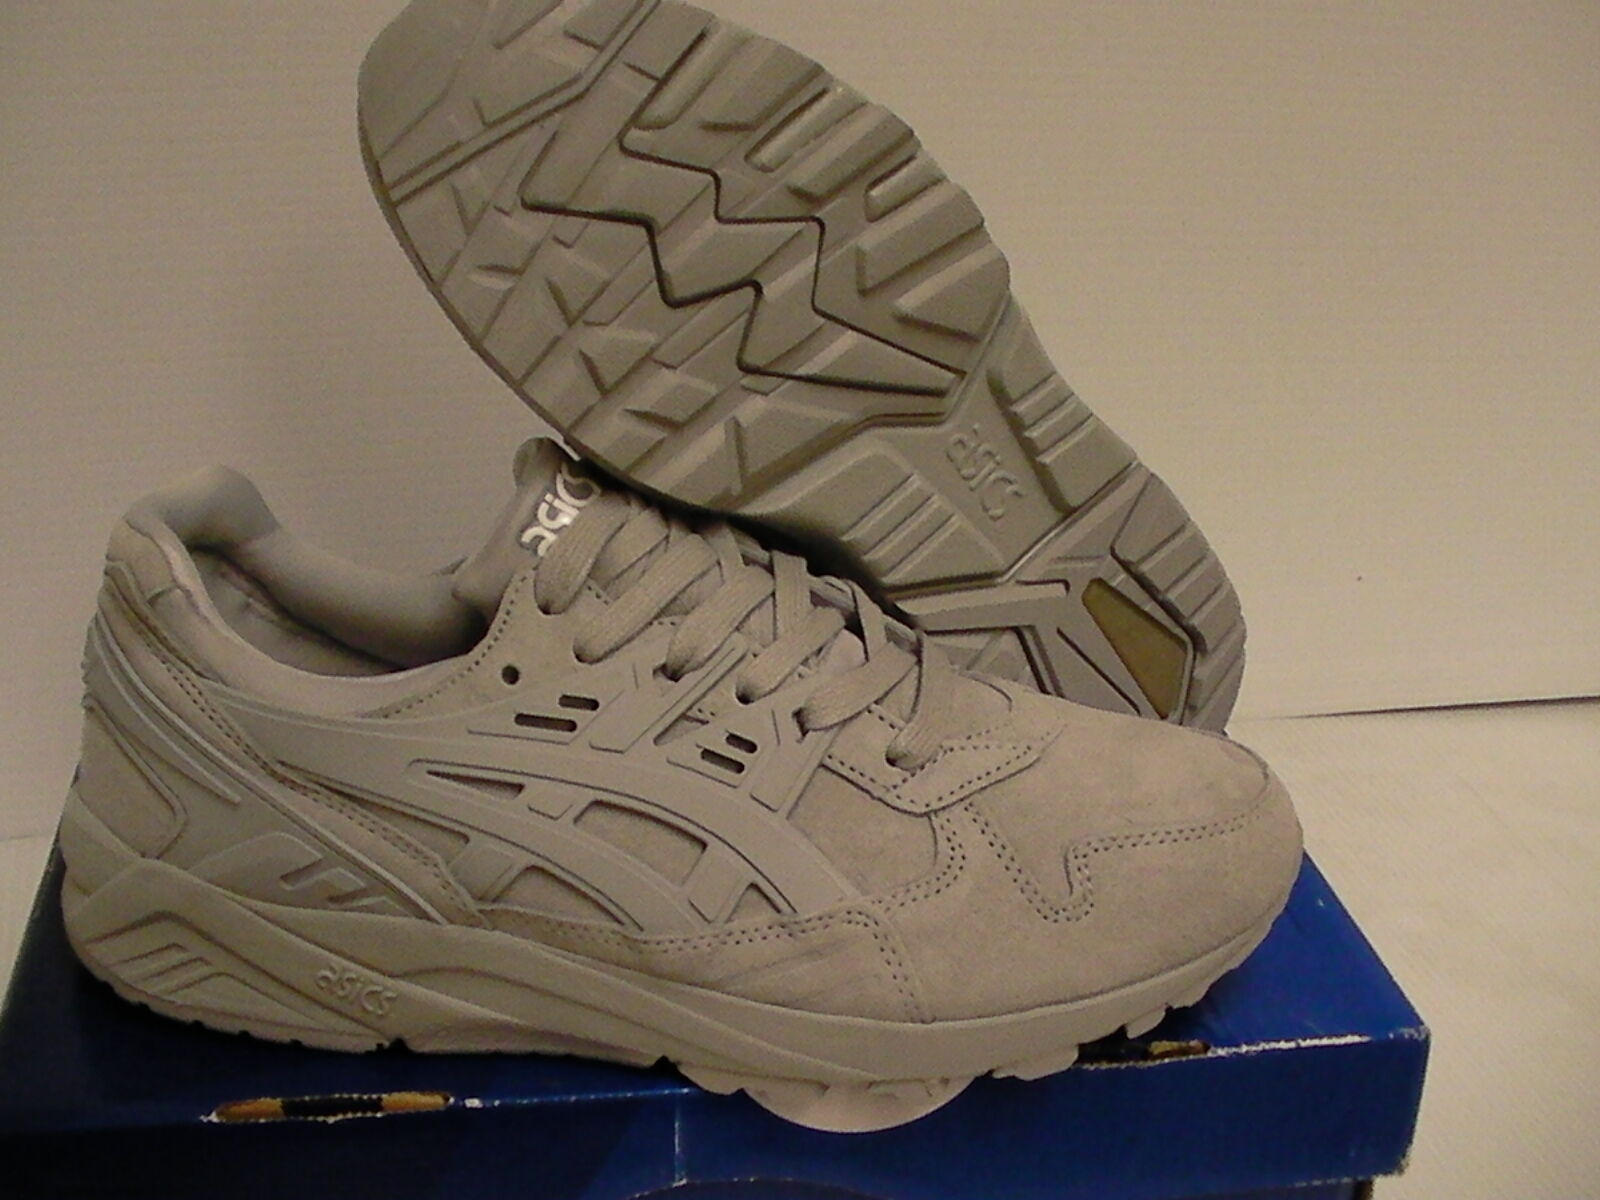 Mens Asics shoes running gel kayano trainer light grey size 7 us new